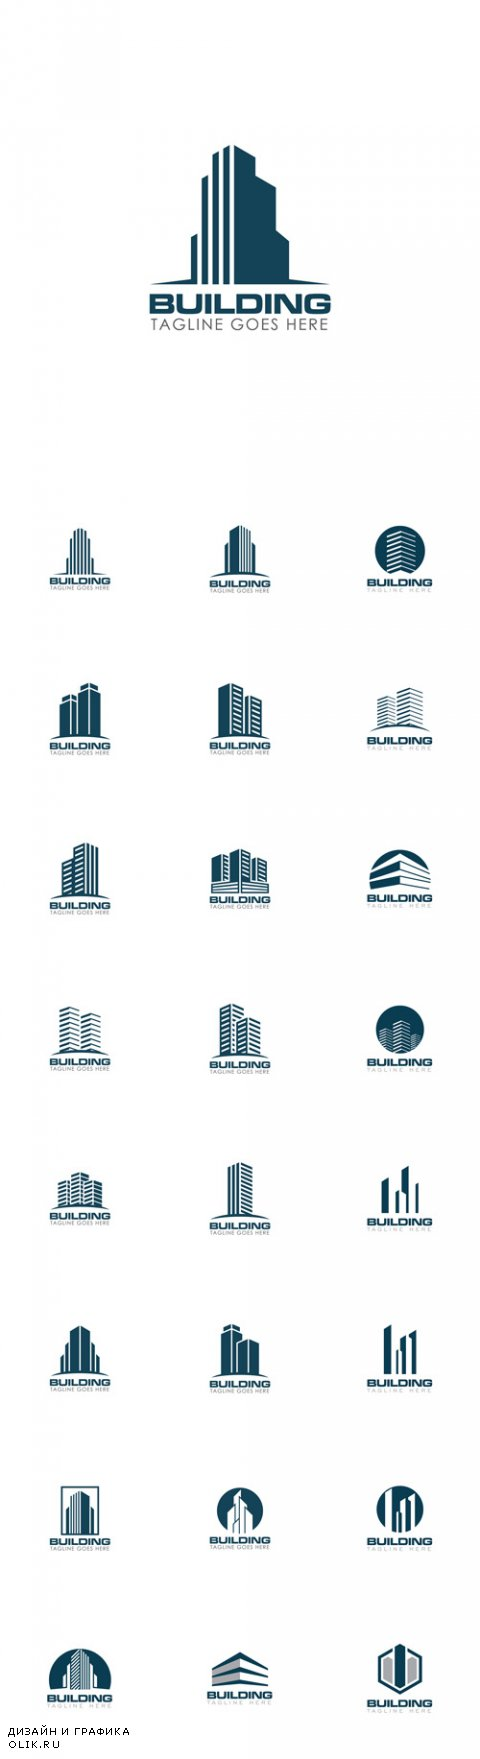 Vector Building Creative Concept Logo Design 2